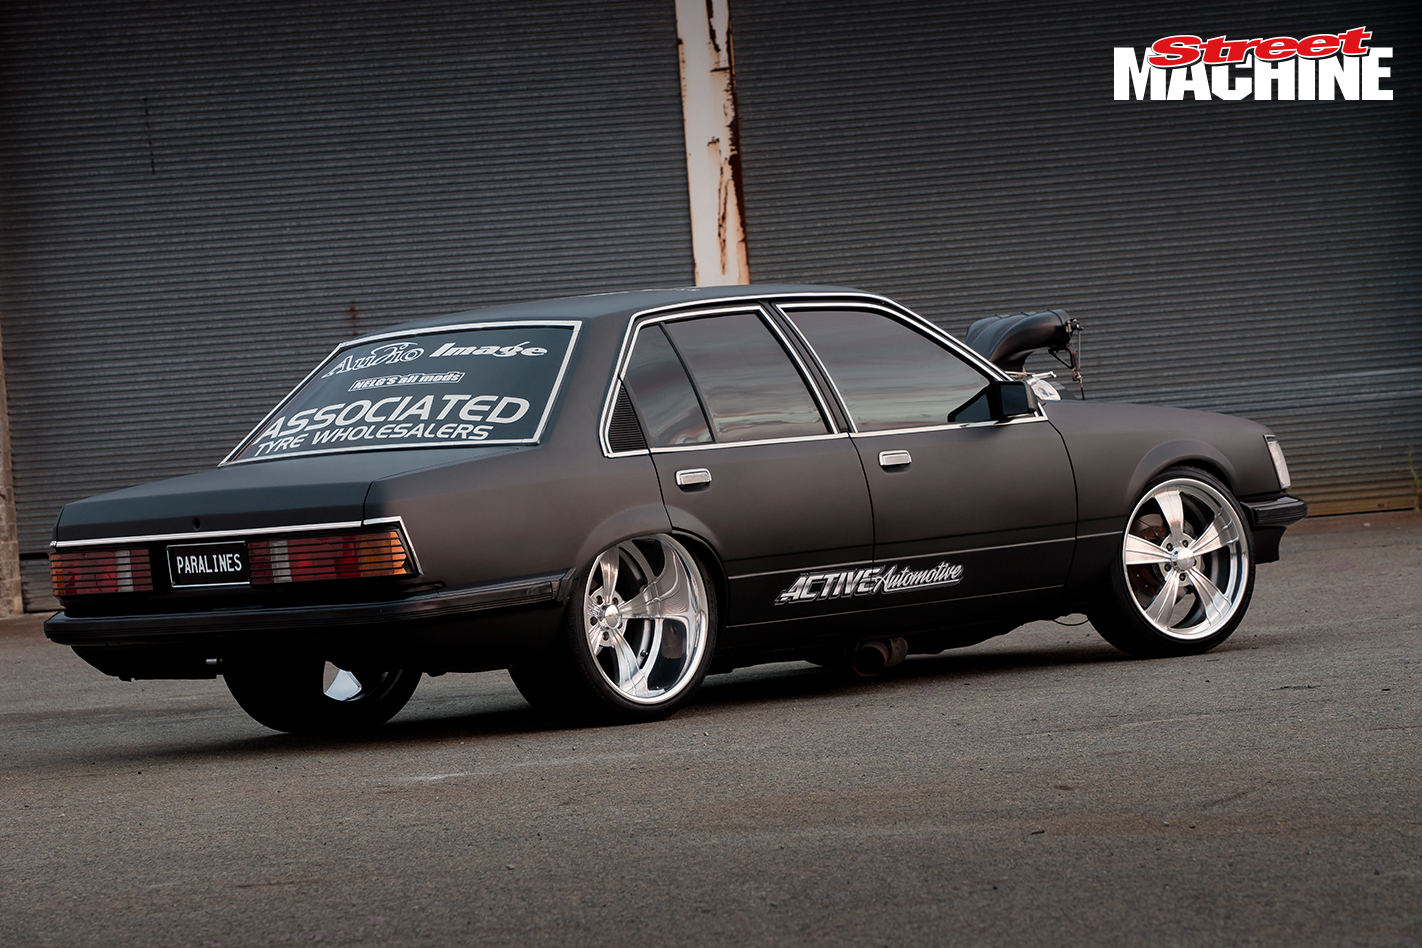 VH Commodore Burnout PARALINES 3 Nw